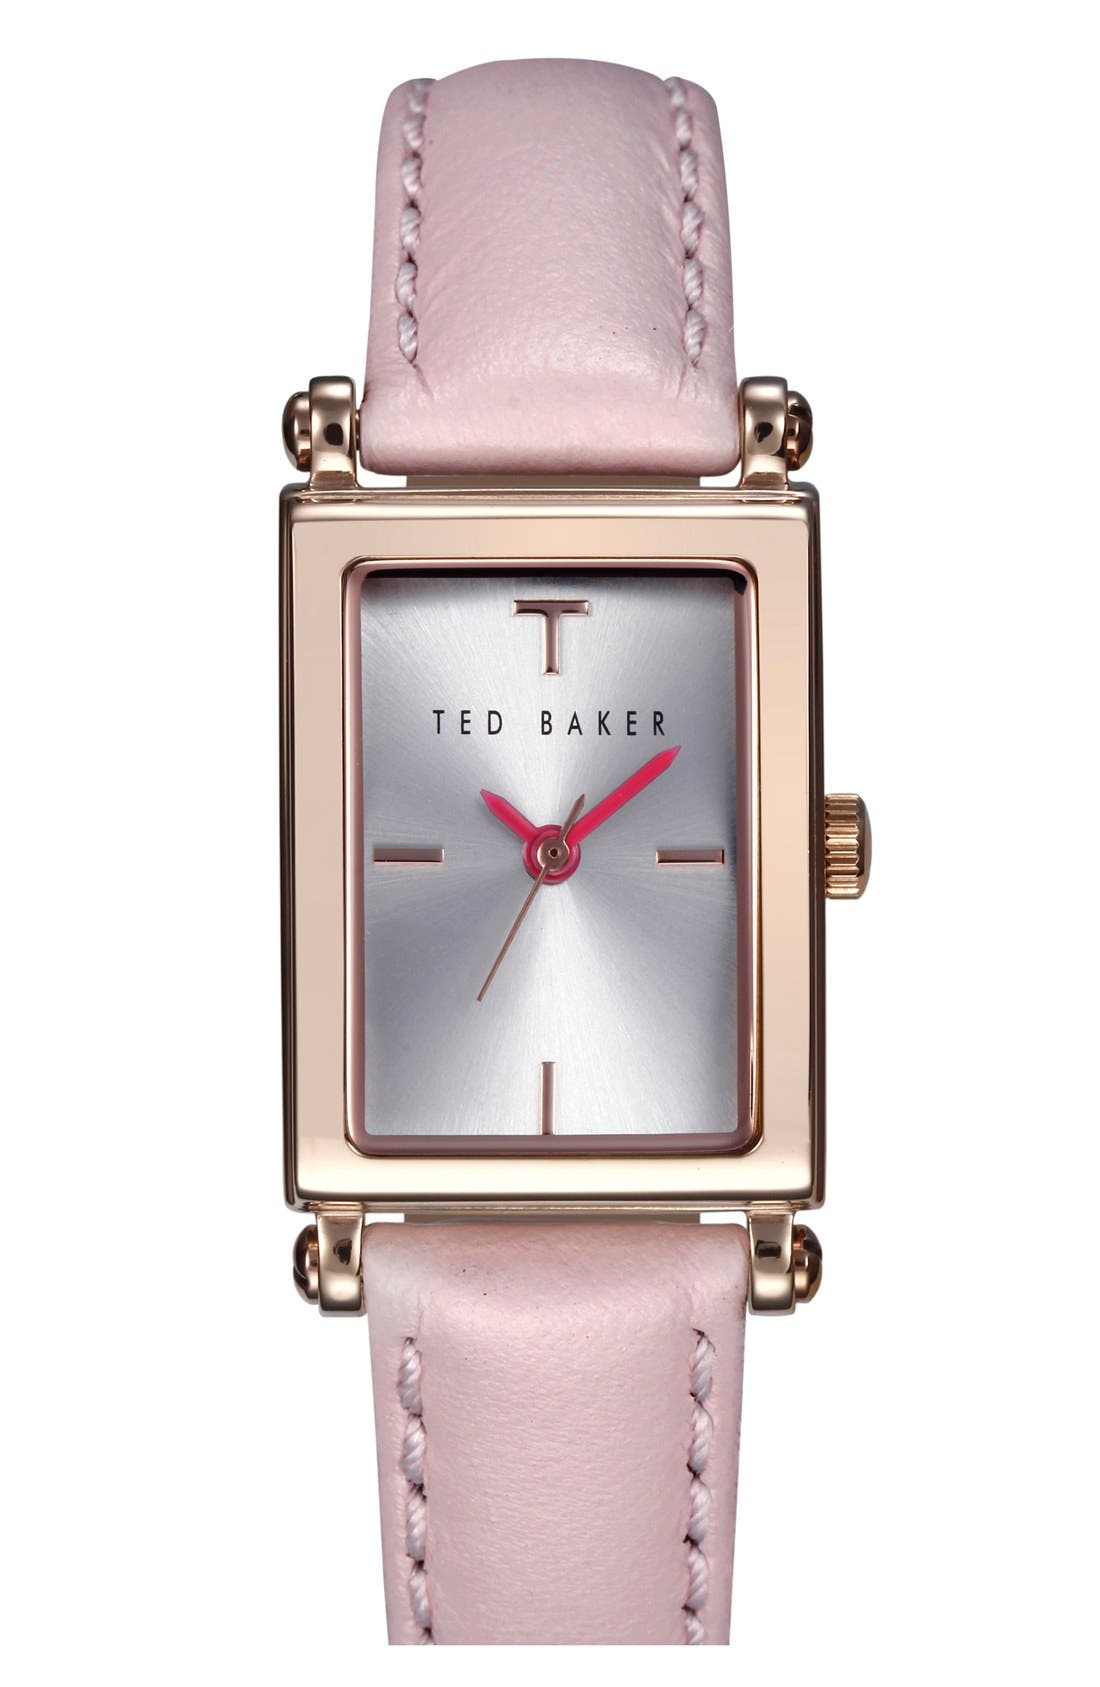 Main Image - Ted Baker London 'Bliss' Rectangle Case Leather Strap Watch, 20mm x 27mm